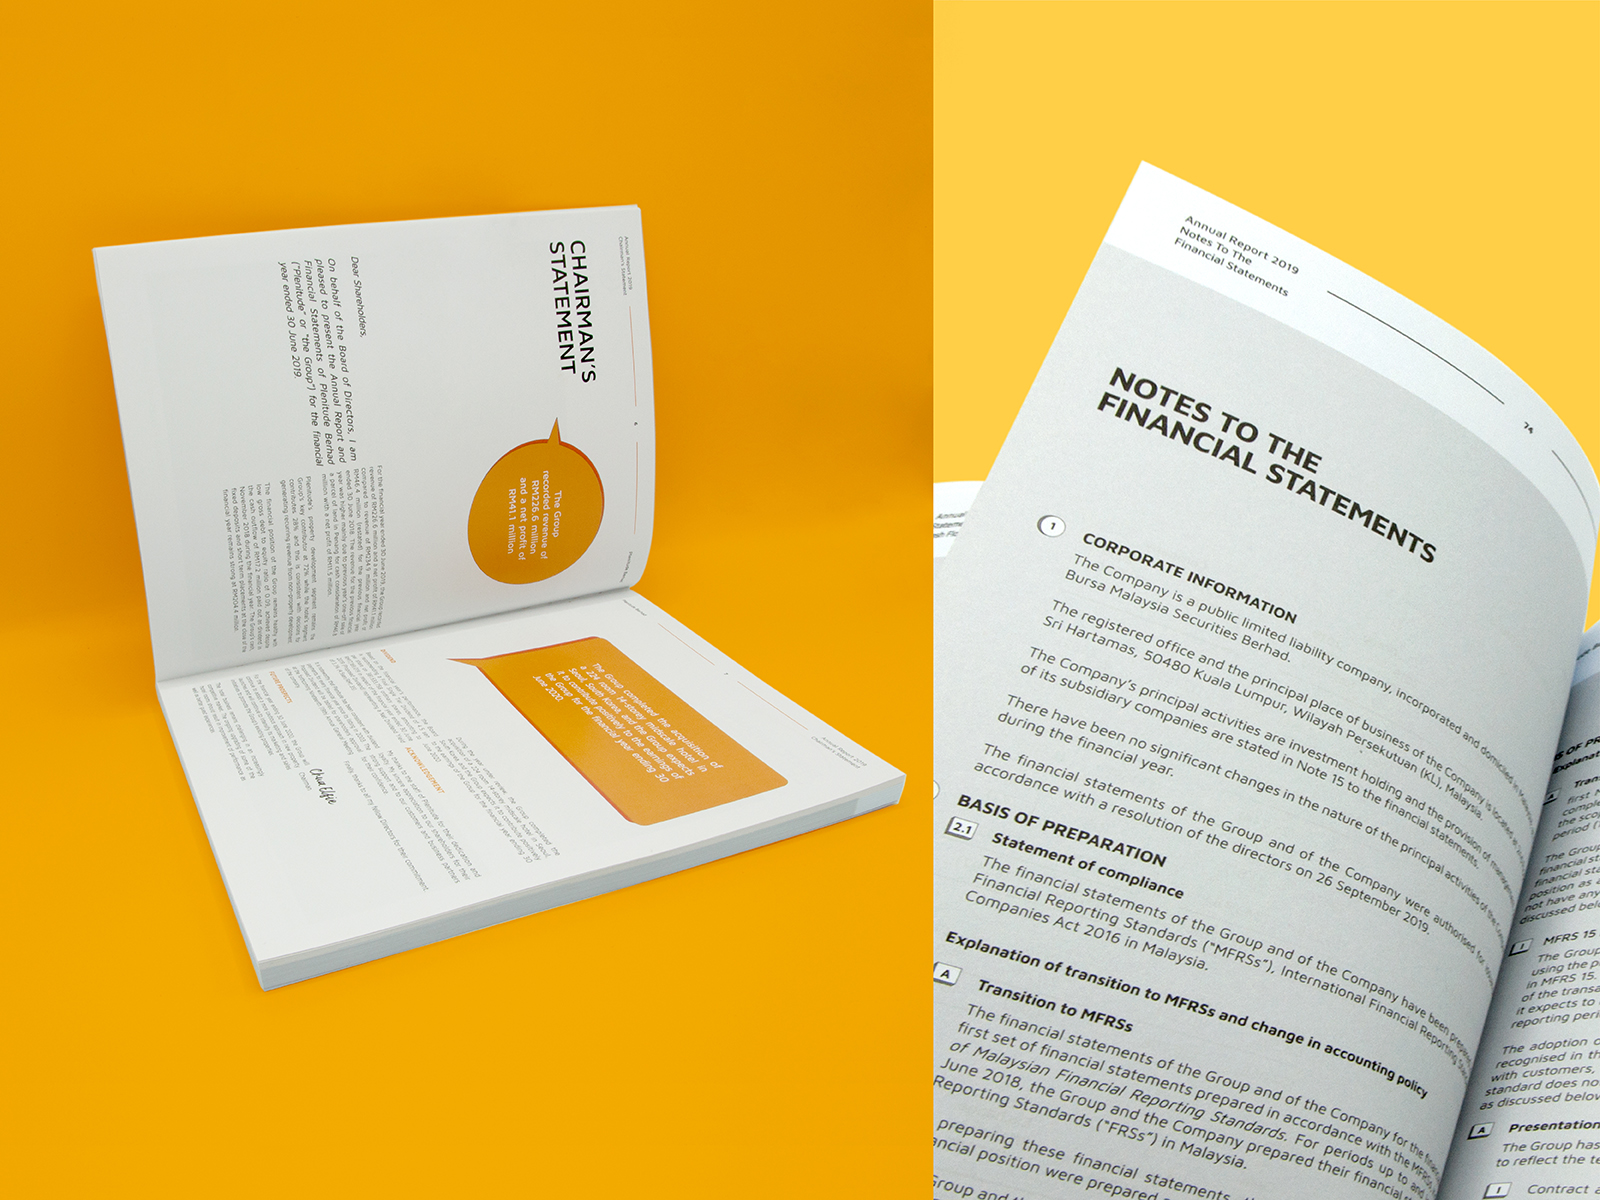 Plenitude annual report 2019 inner page layout design and graphic elements